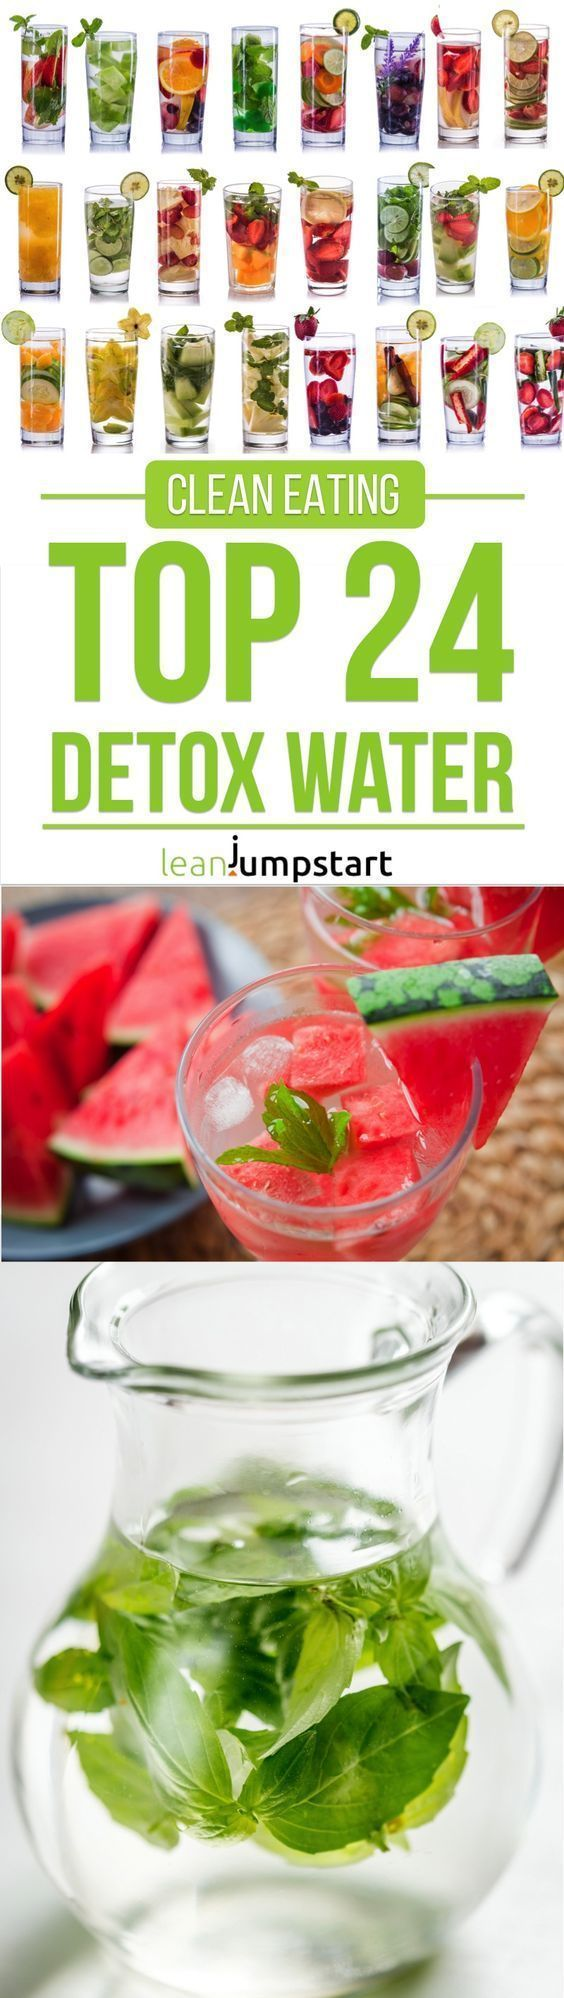 Detox Water: Top 24 clean recipes to boost your metabolism #fastmetabolismdiettips #DiabeticDetoxDietPlan